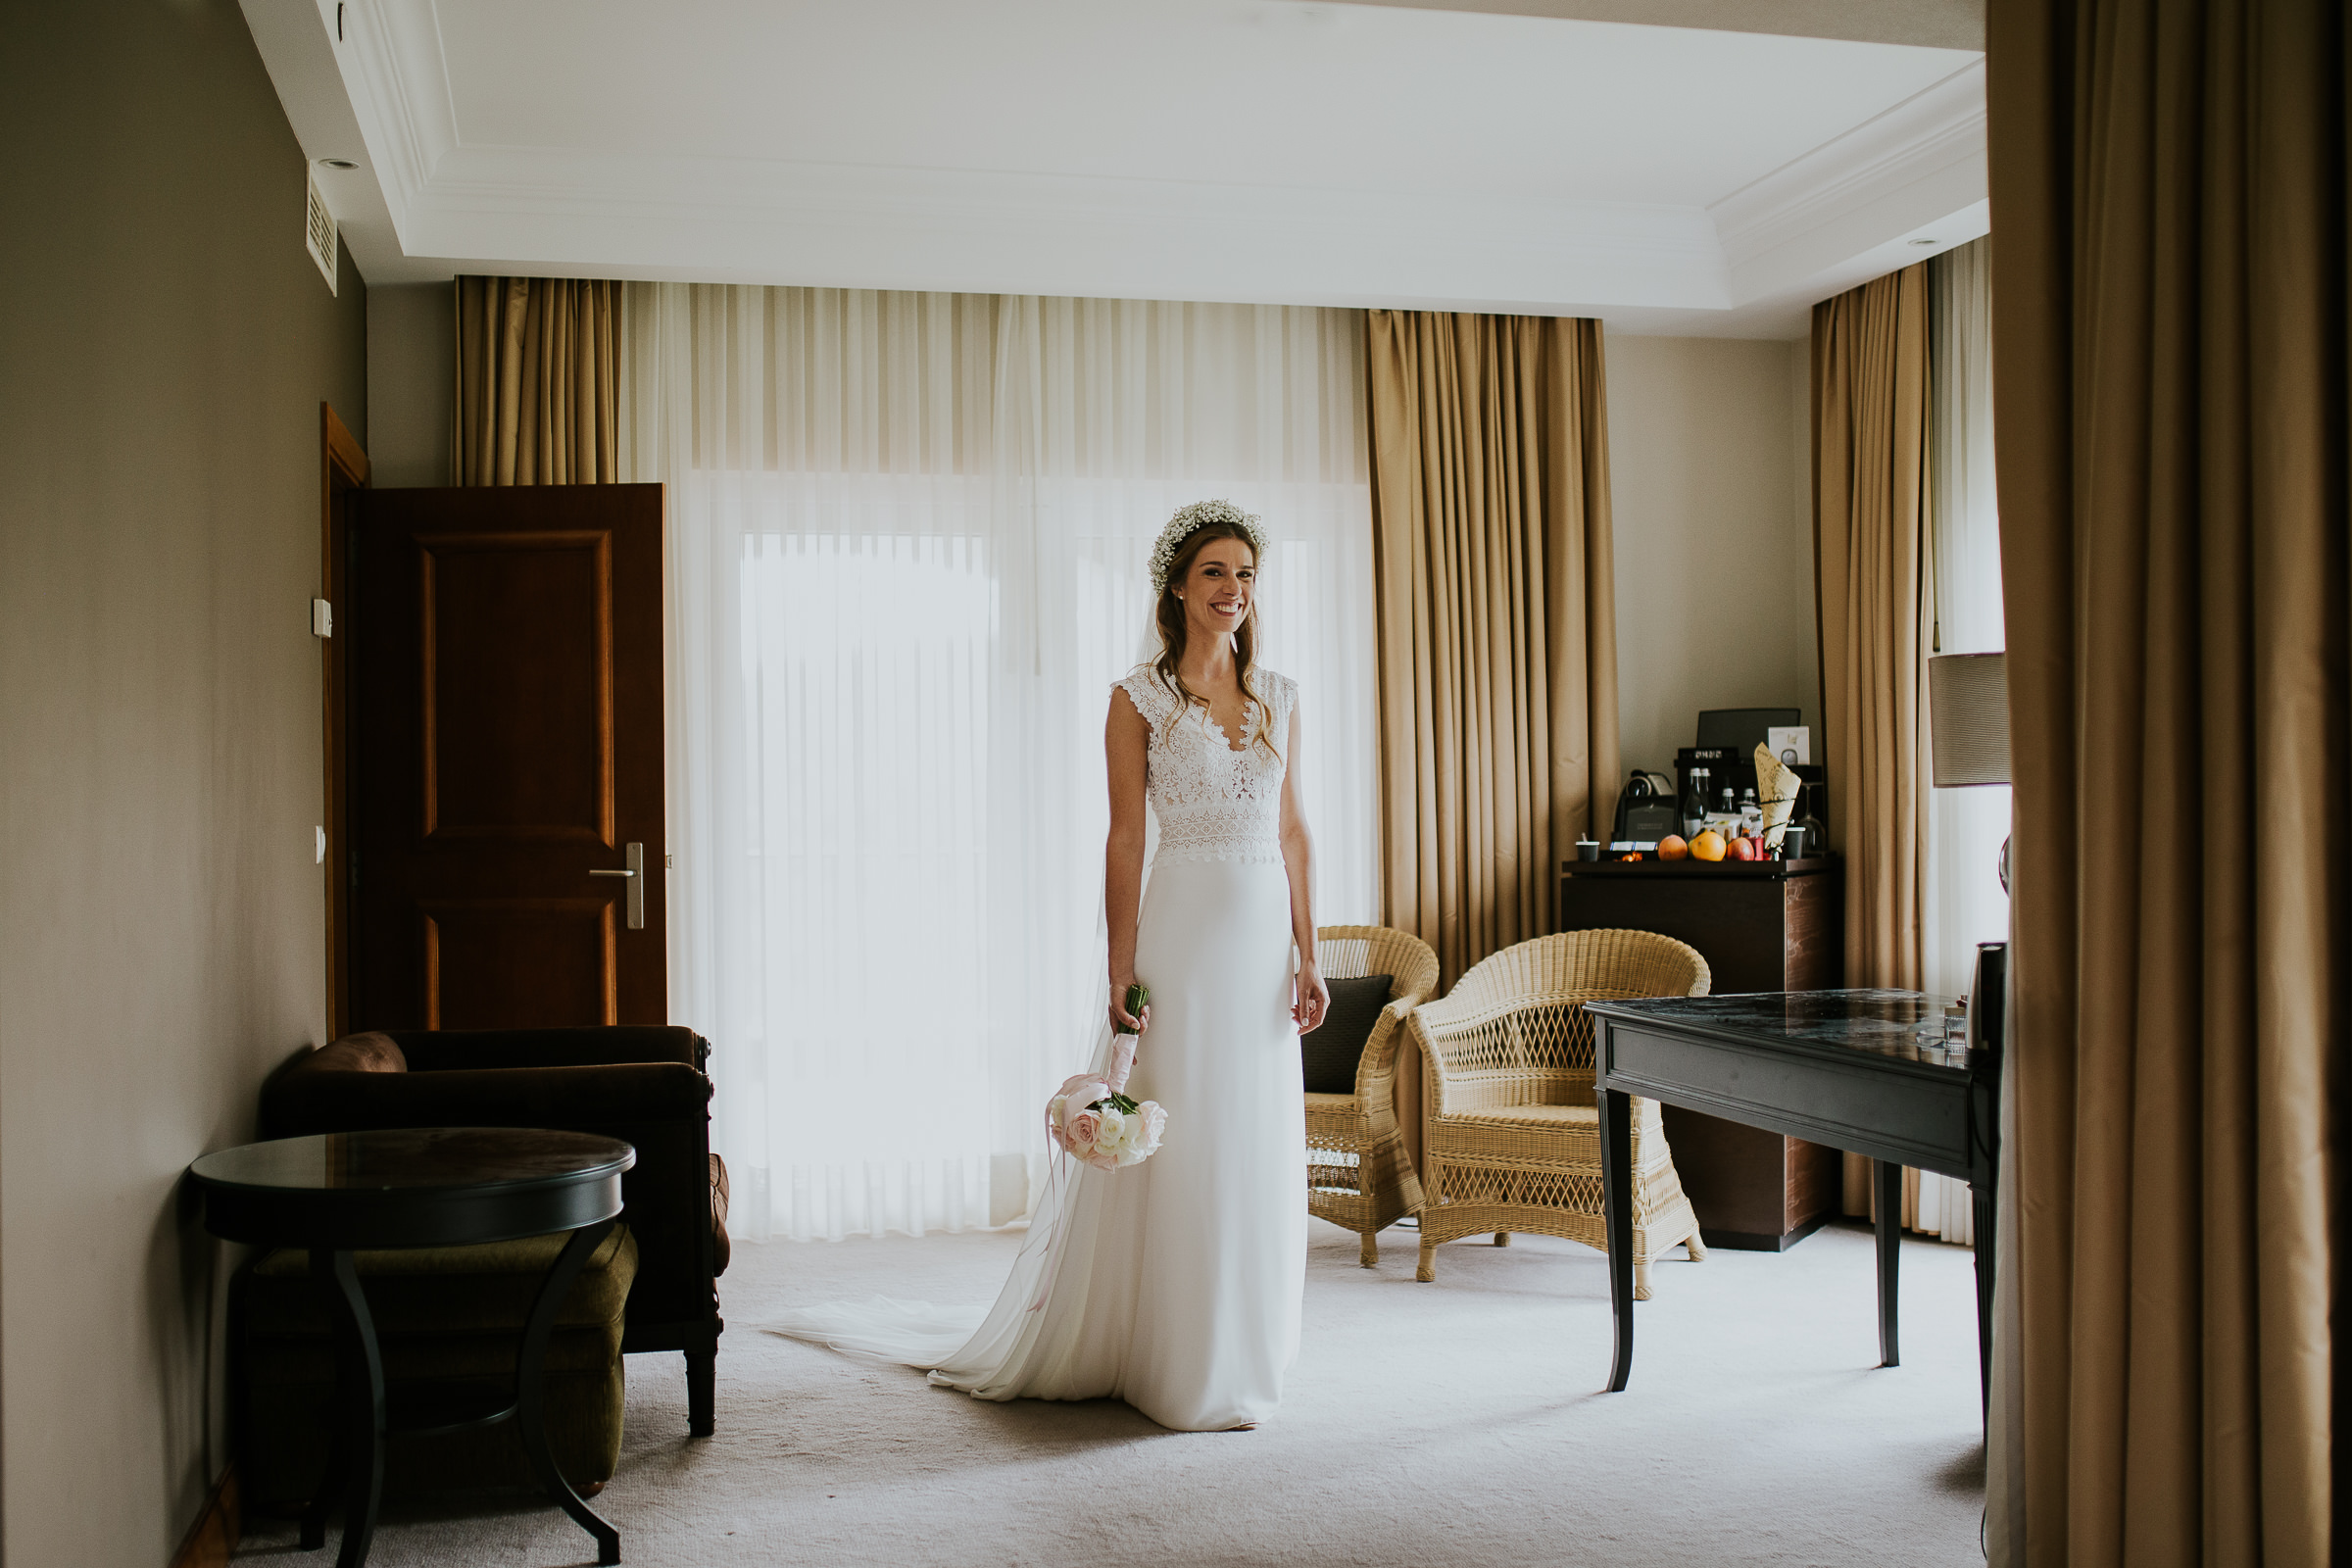 Centered portrait of the bride holing her bouquet in the middle of an hotel room